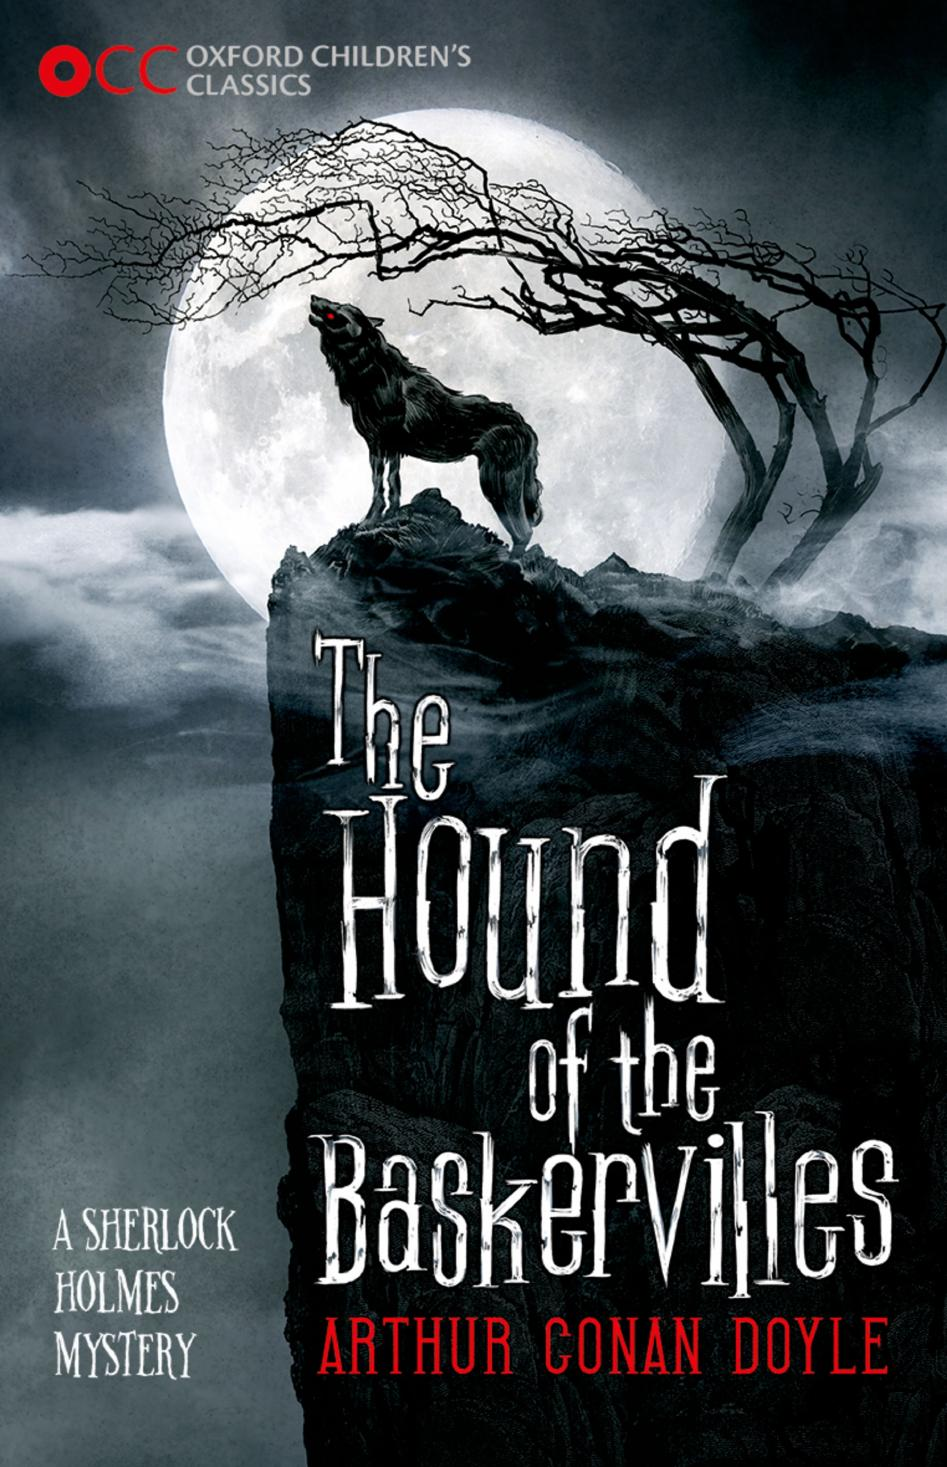 The Hound of the Baskervilles (1983 film) - Wikipedia